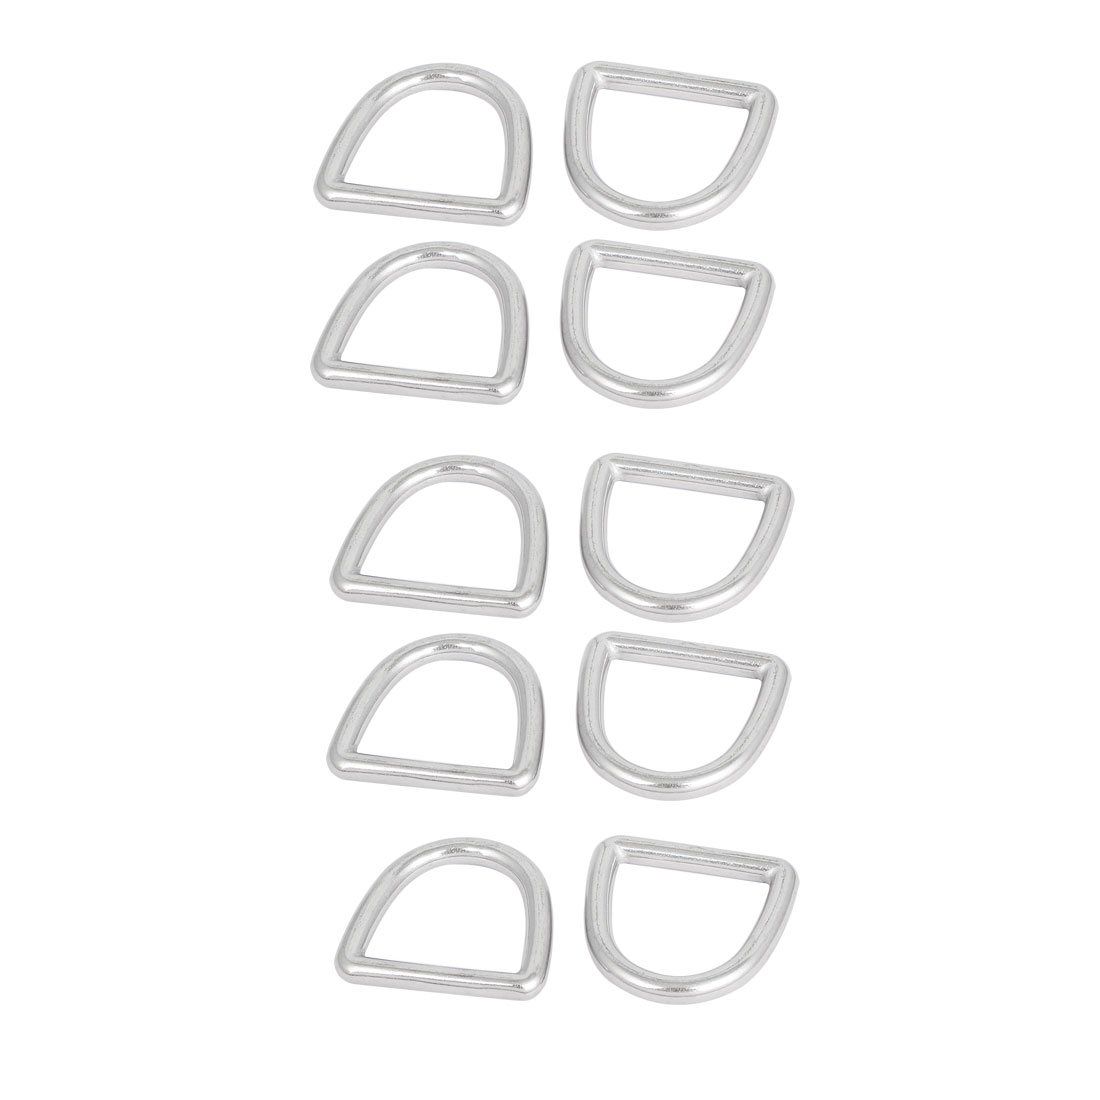 Stainless Steel D-Shaped Hooks D Ring Buckles Bag Handbag Belt Buckle 10 Pcs